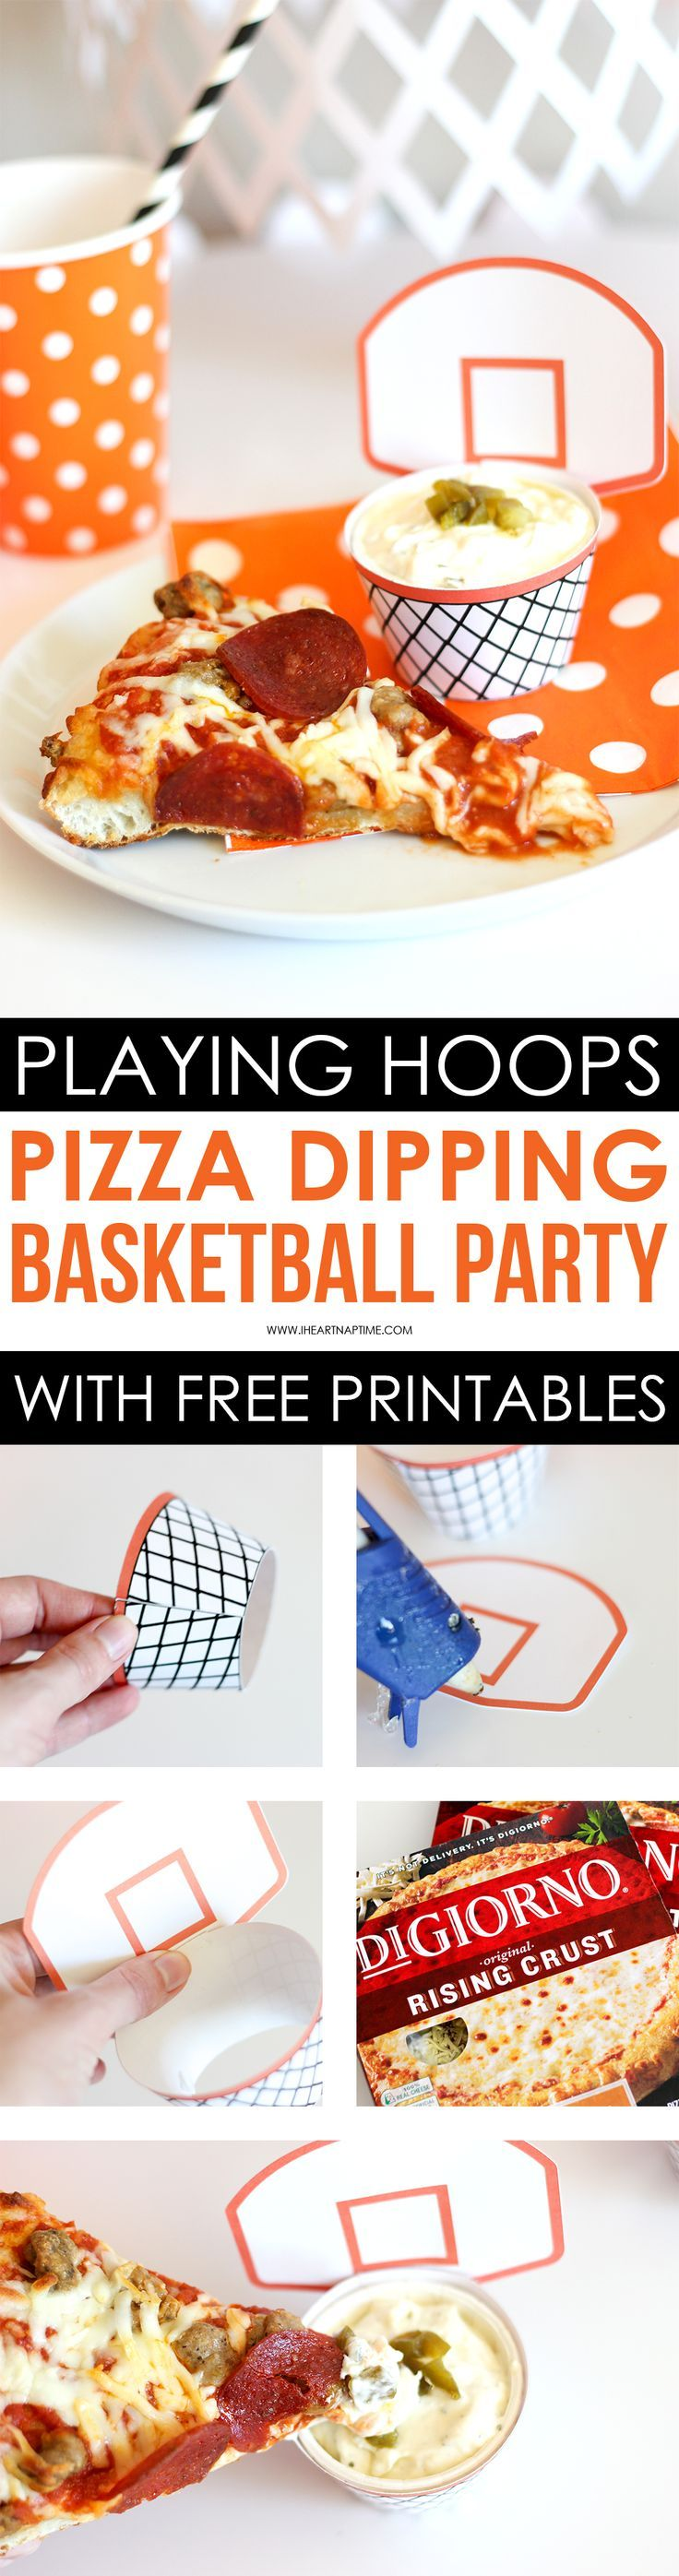 Easy Basketball Pizza Party - Having DIGIORNO pizza for a party is so convenient because it's fast and easy! Check out these tips for throwing a fun Basketball Pizza Party!